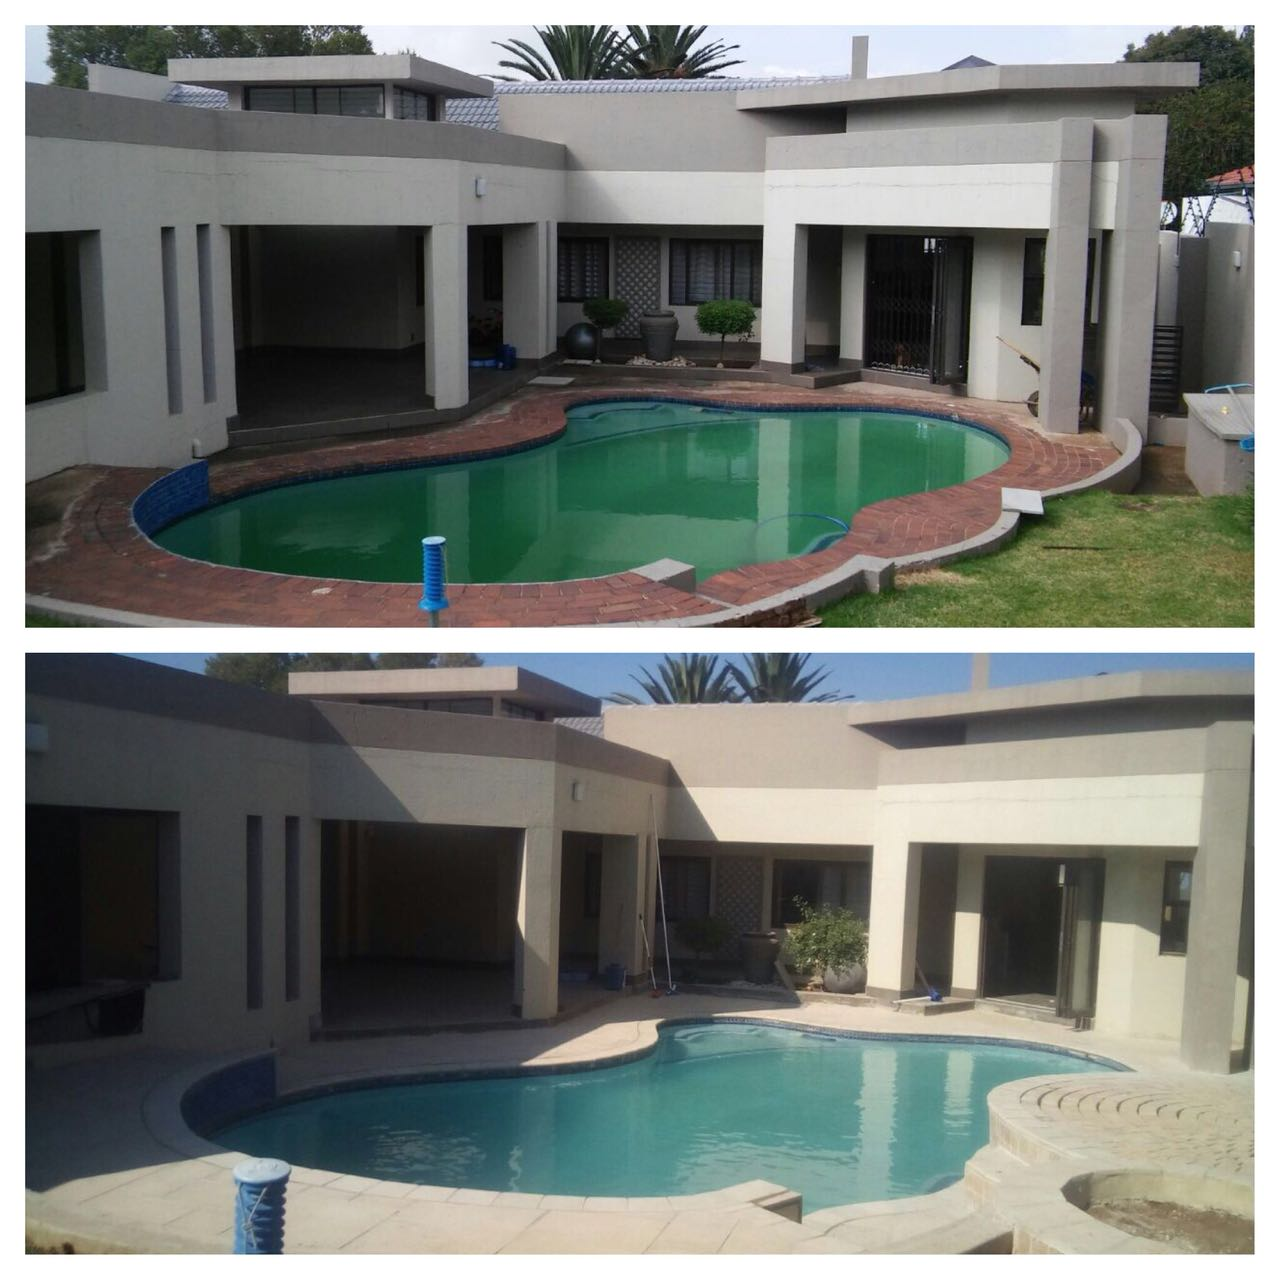 Outdoor Paving, Pool Paving, Pool Renovations, Ladscaping & Koi Ponds